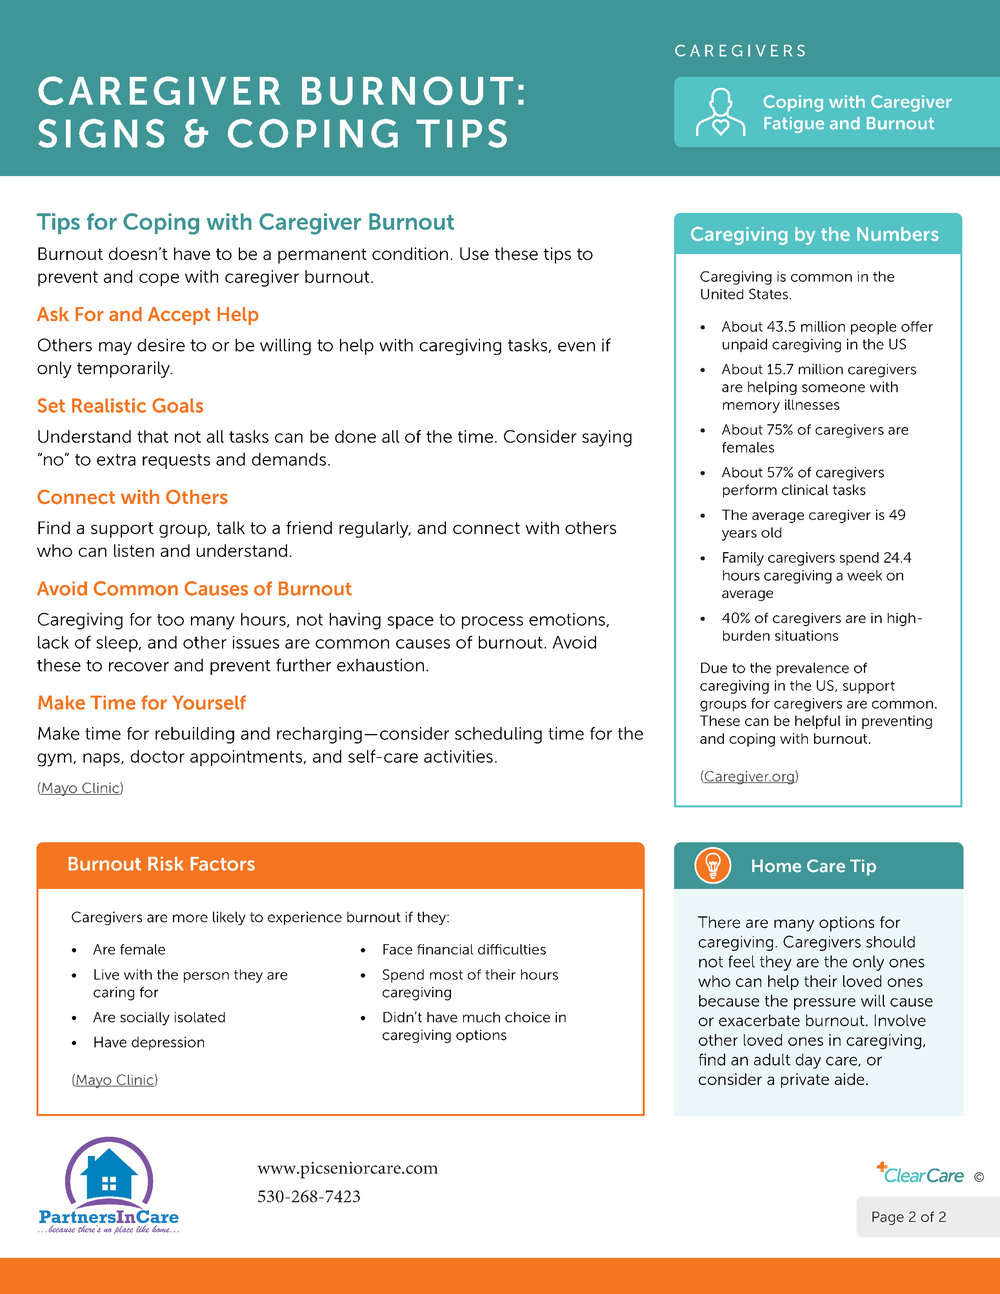 Caregiver Burnout: Signs & Coping Tips page 2